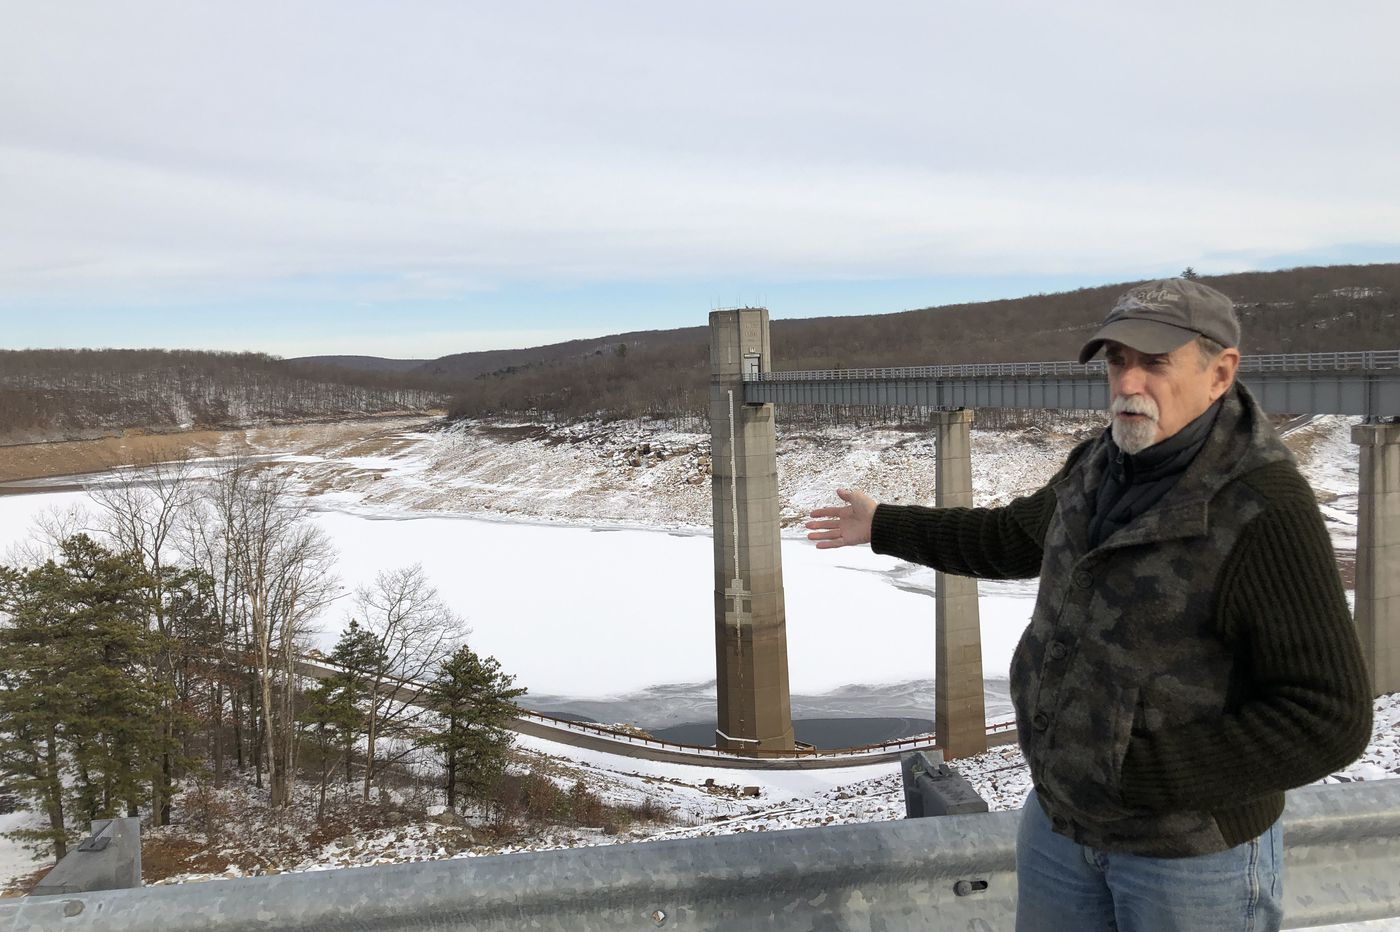 Whitewater fans fear change at Lehigh dam, wonder why New York City is involved